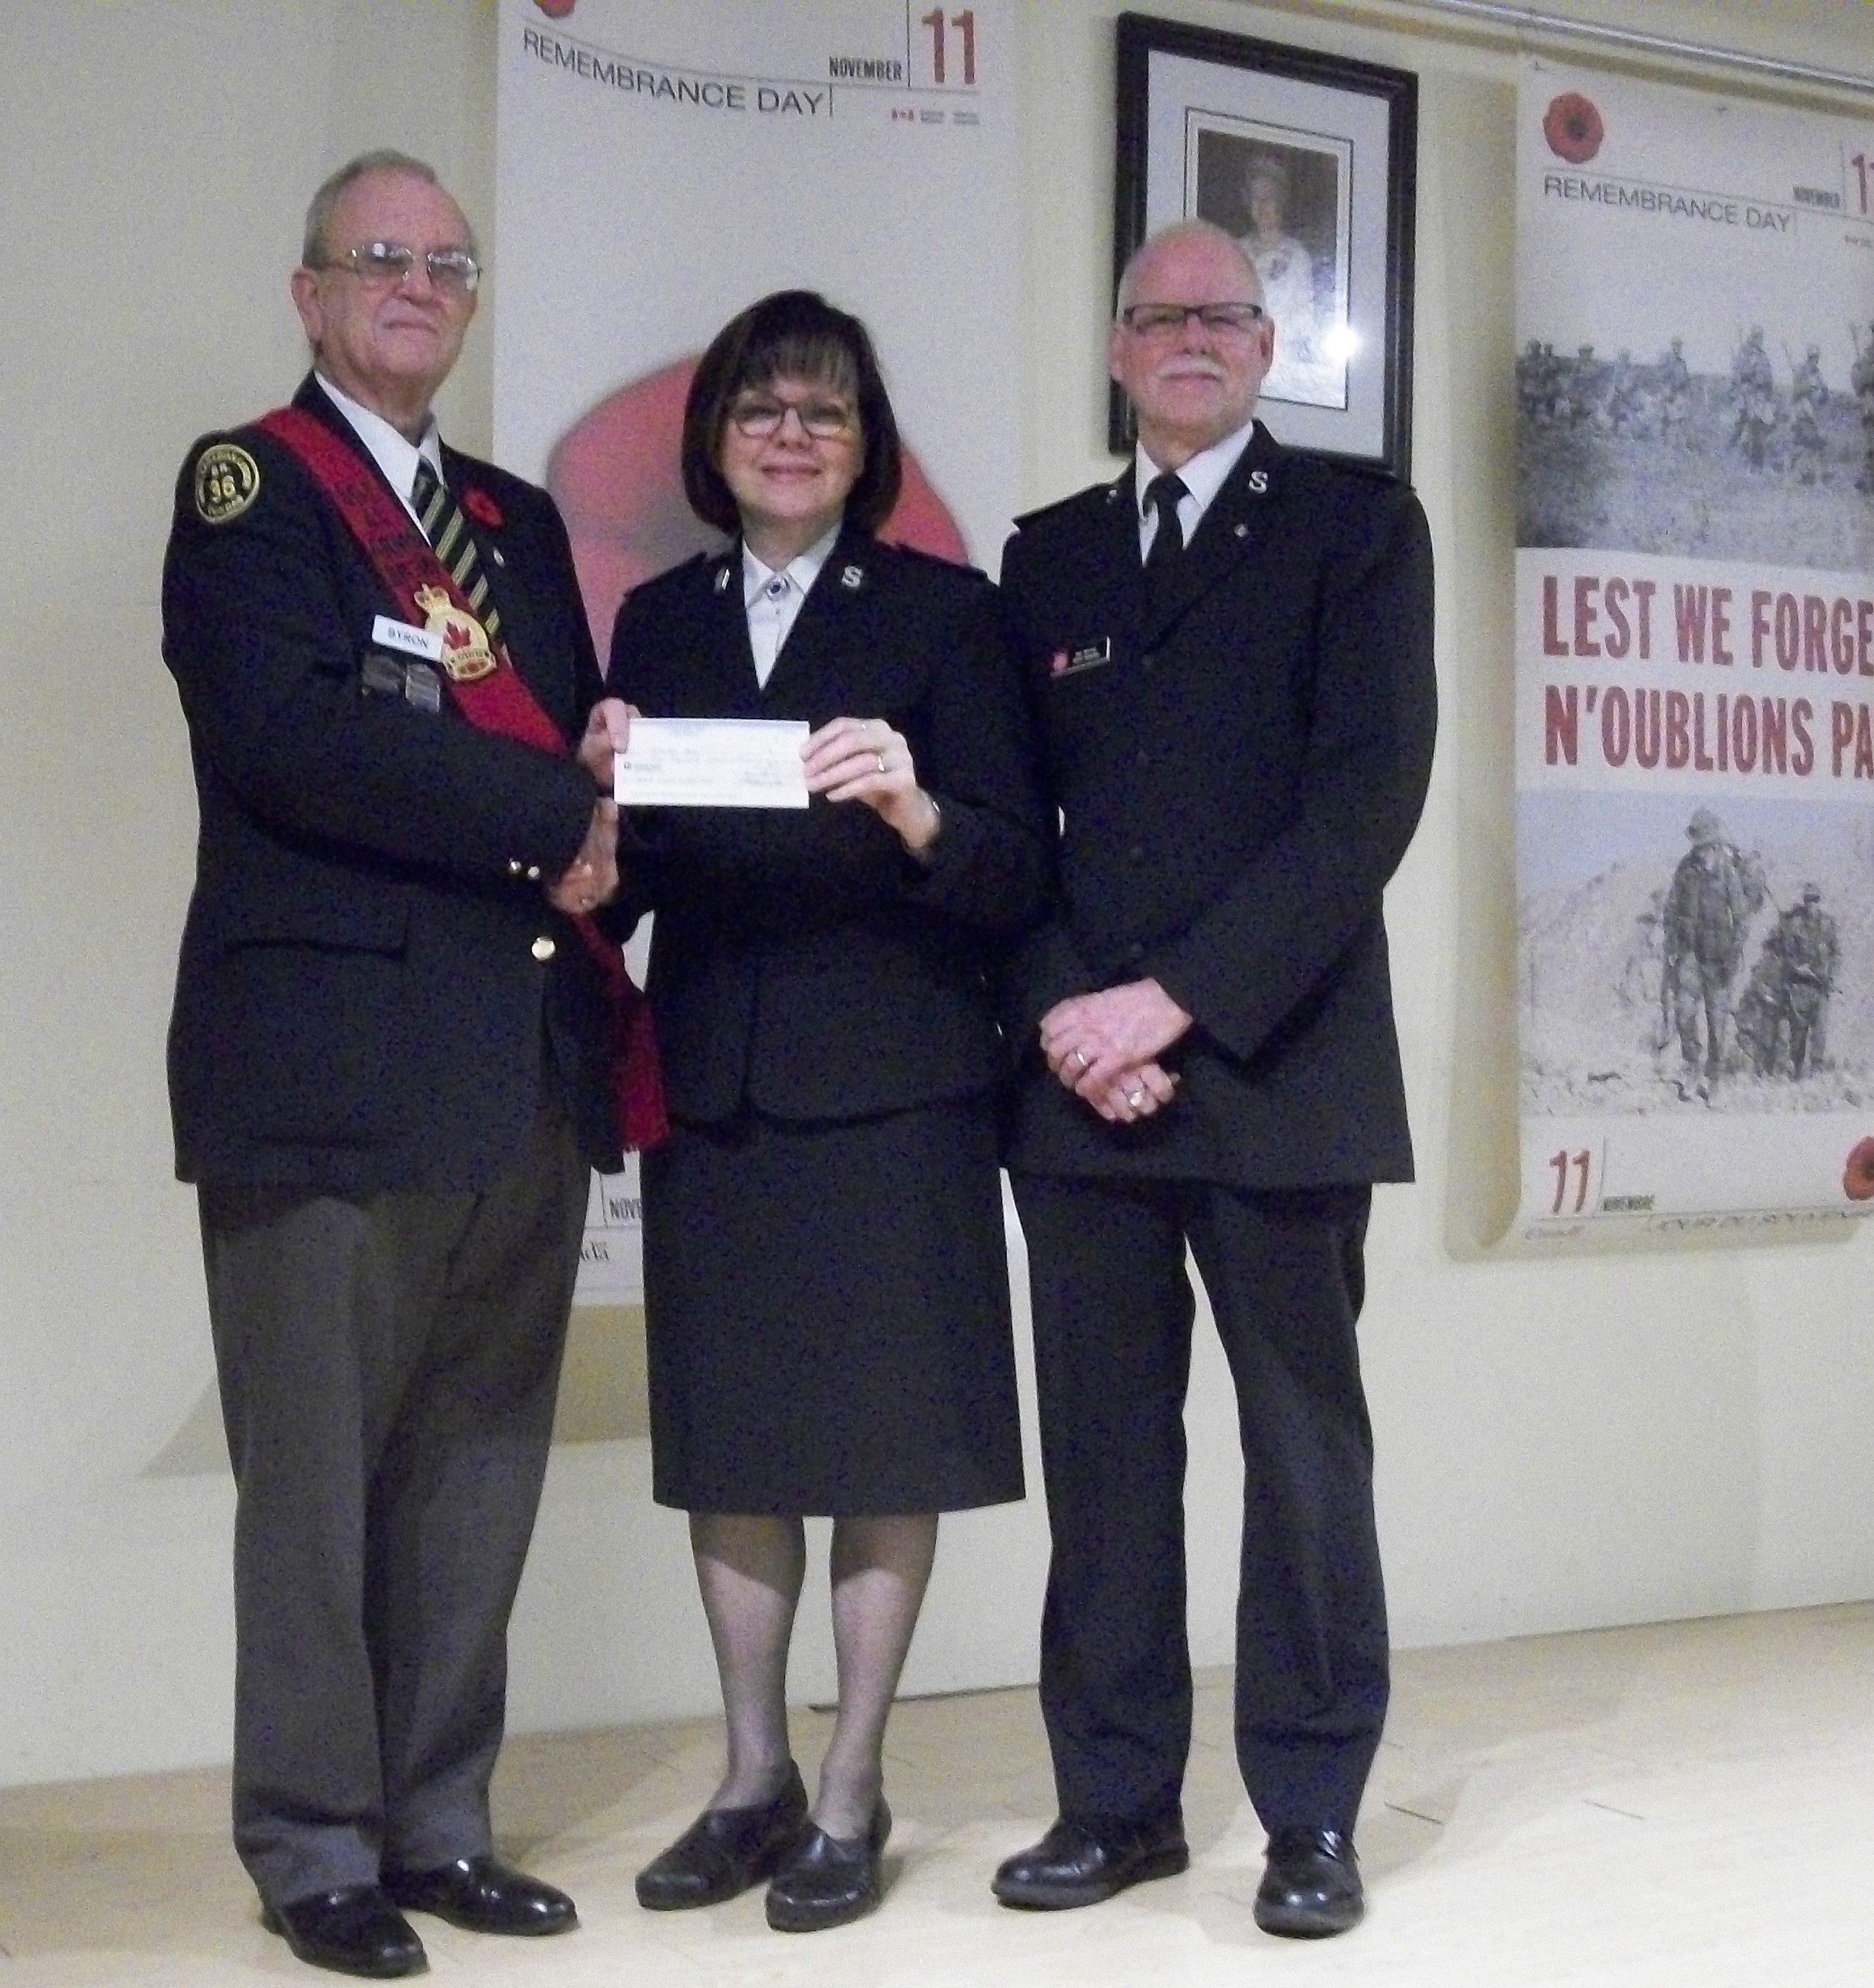 http://br36dundas.org/2018RemembranceChequepresentations/2018RemembranceChequepics/2018%20SALVATION%20ARMY.jpg